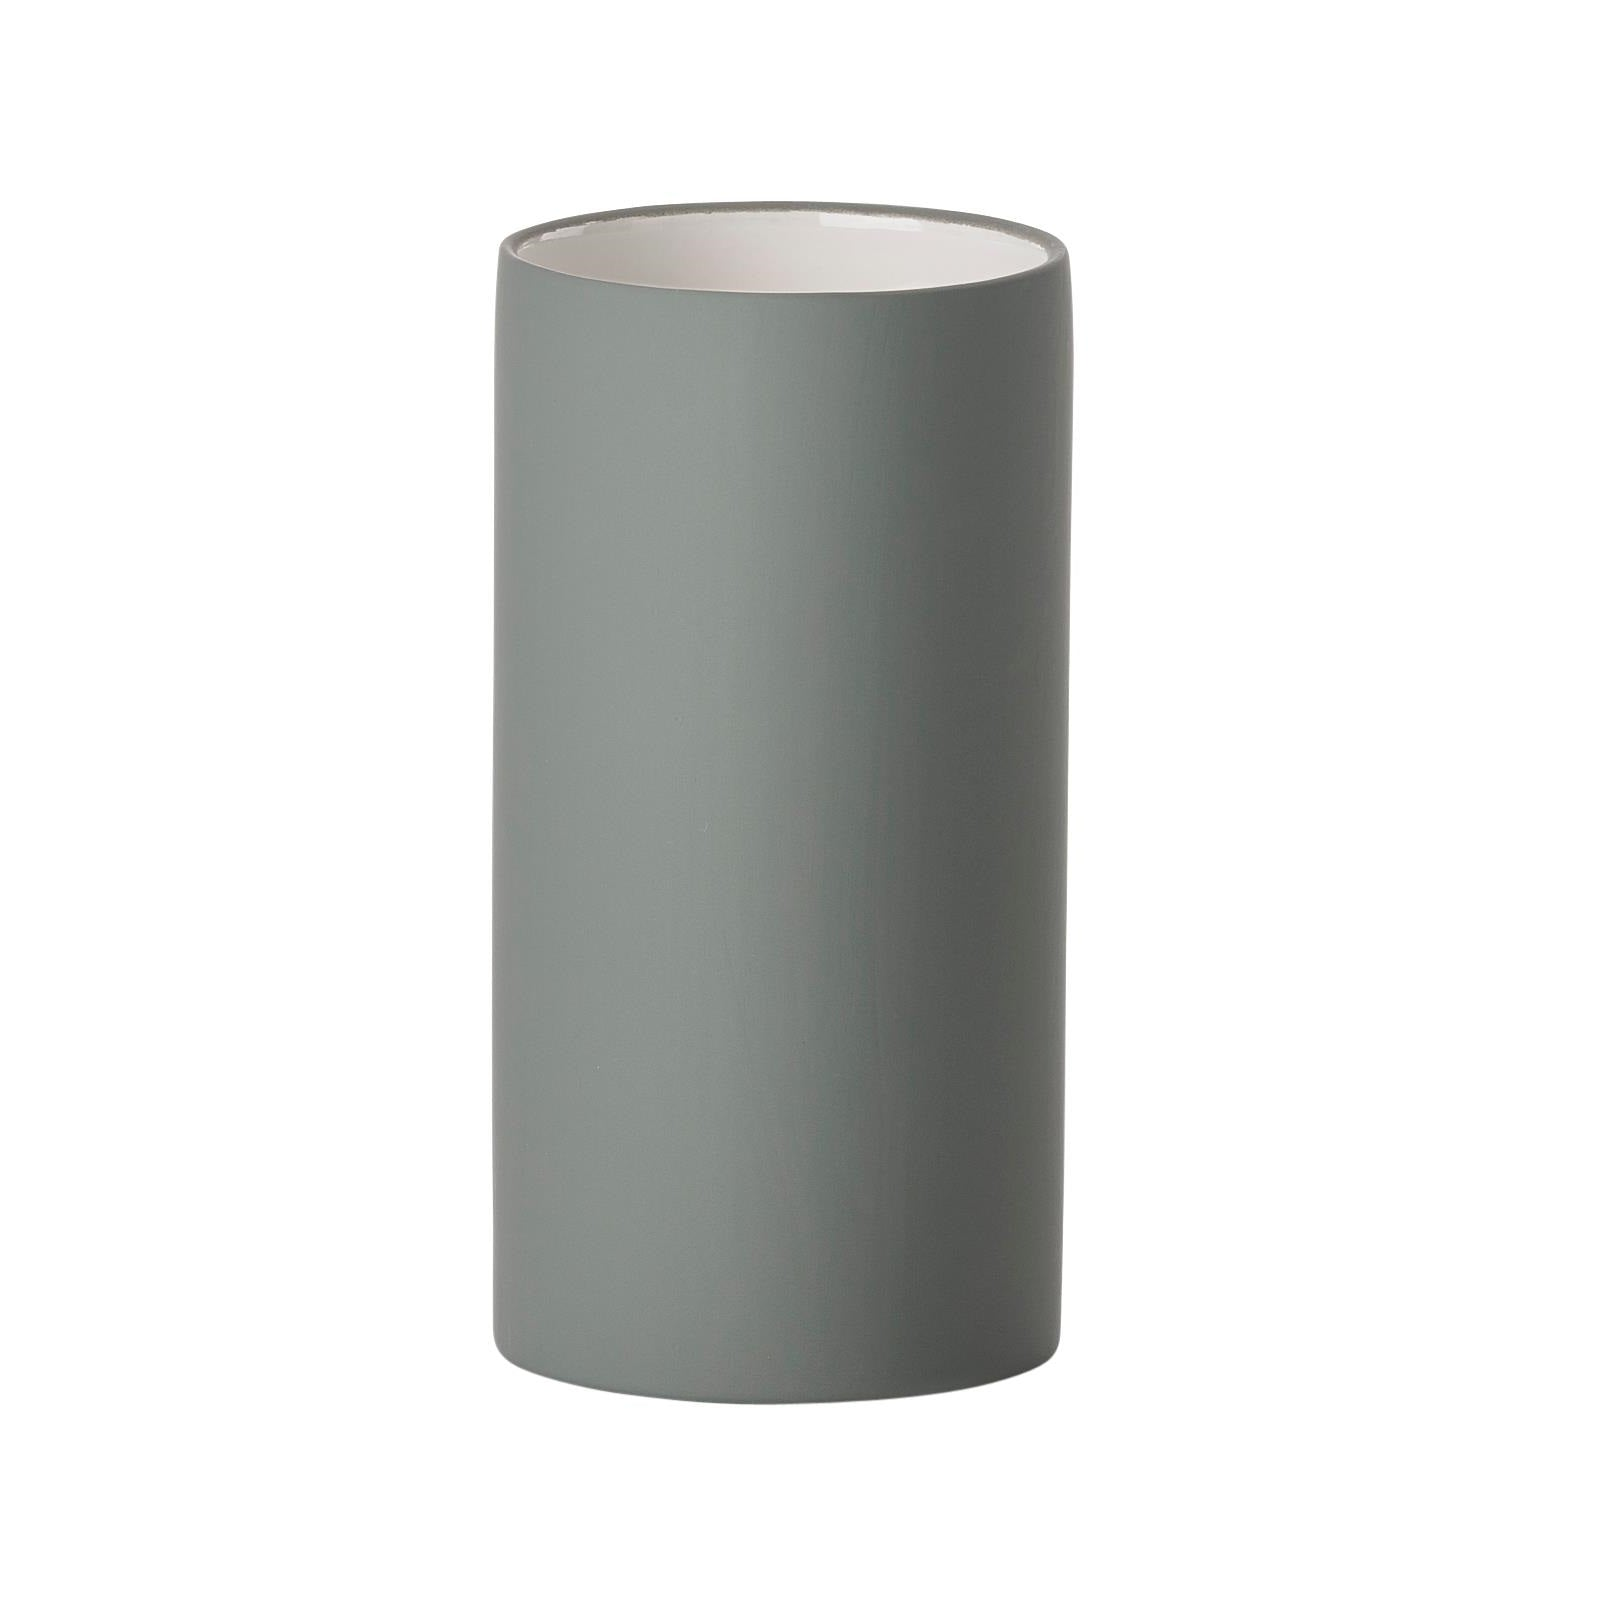 Solo Toothbrush Holder- Grey